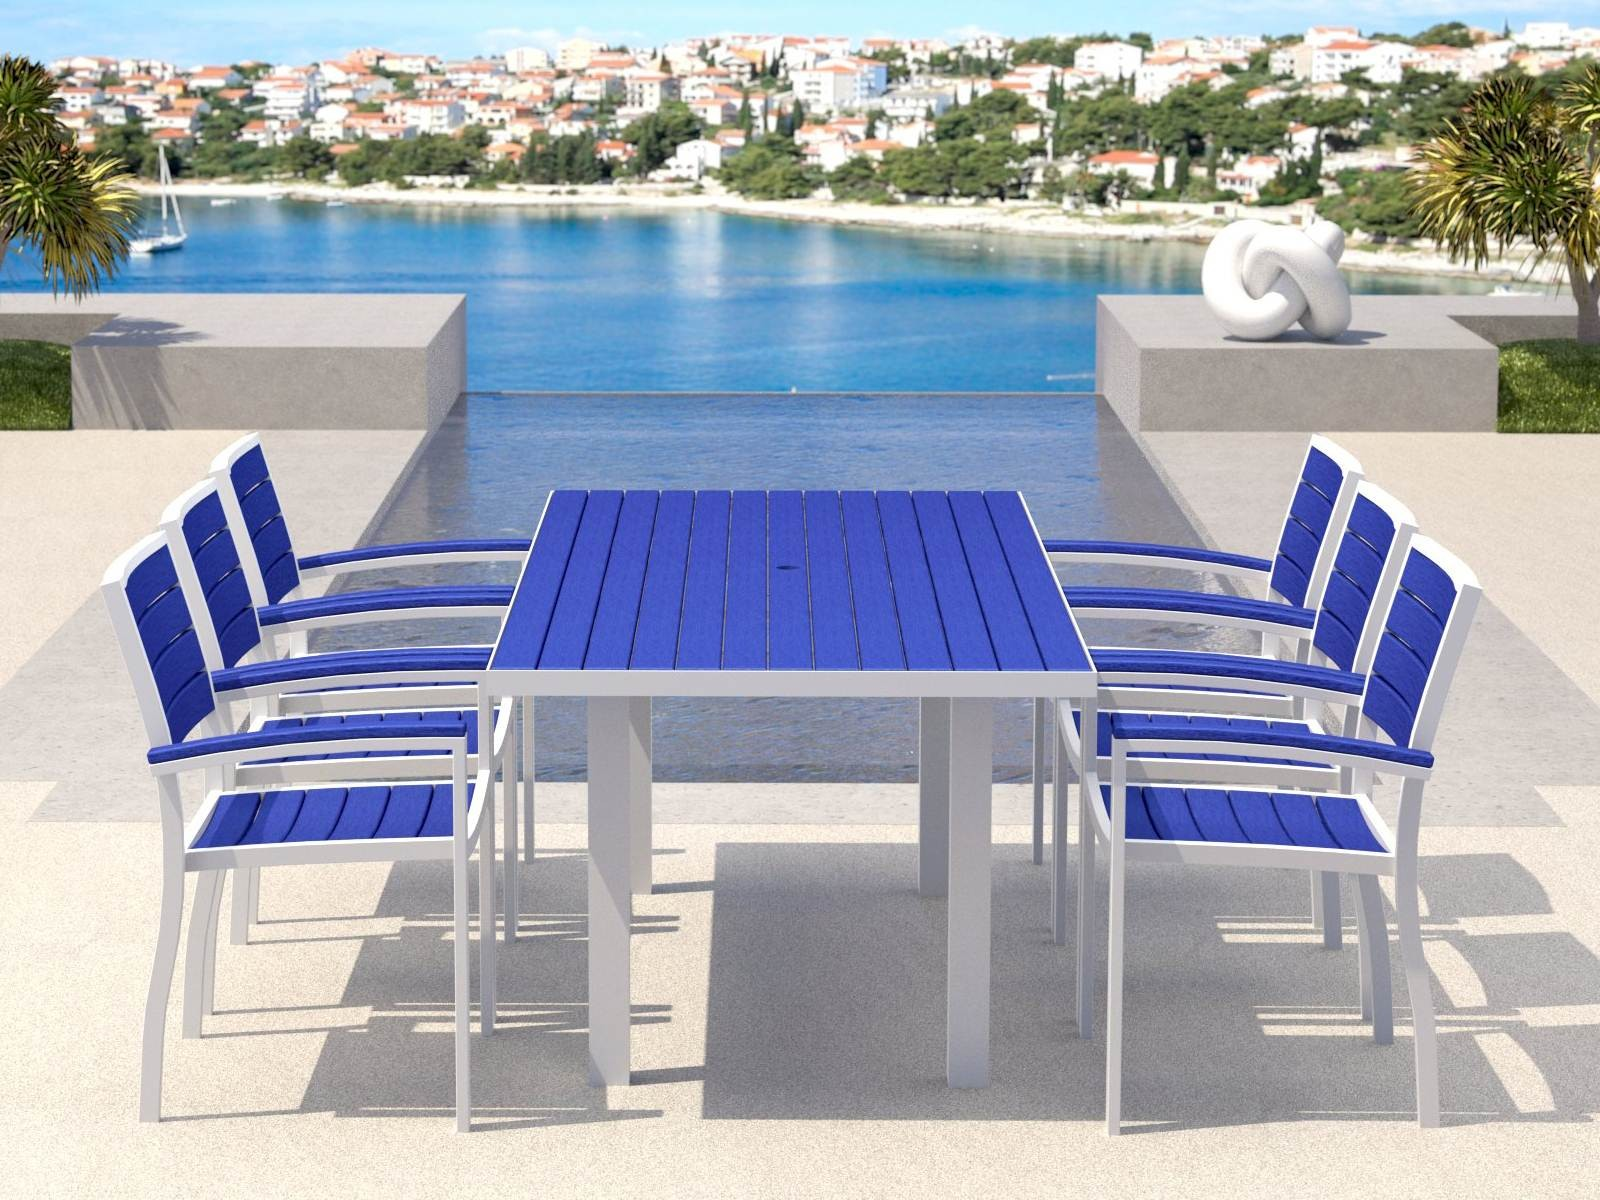 Be earth friendly with outdoor recycled milk jug furniture for Backyard pool furniture